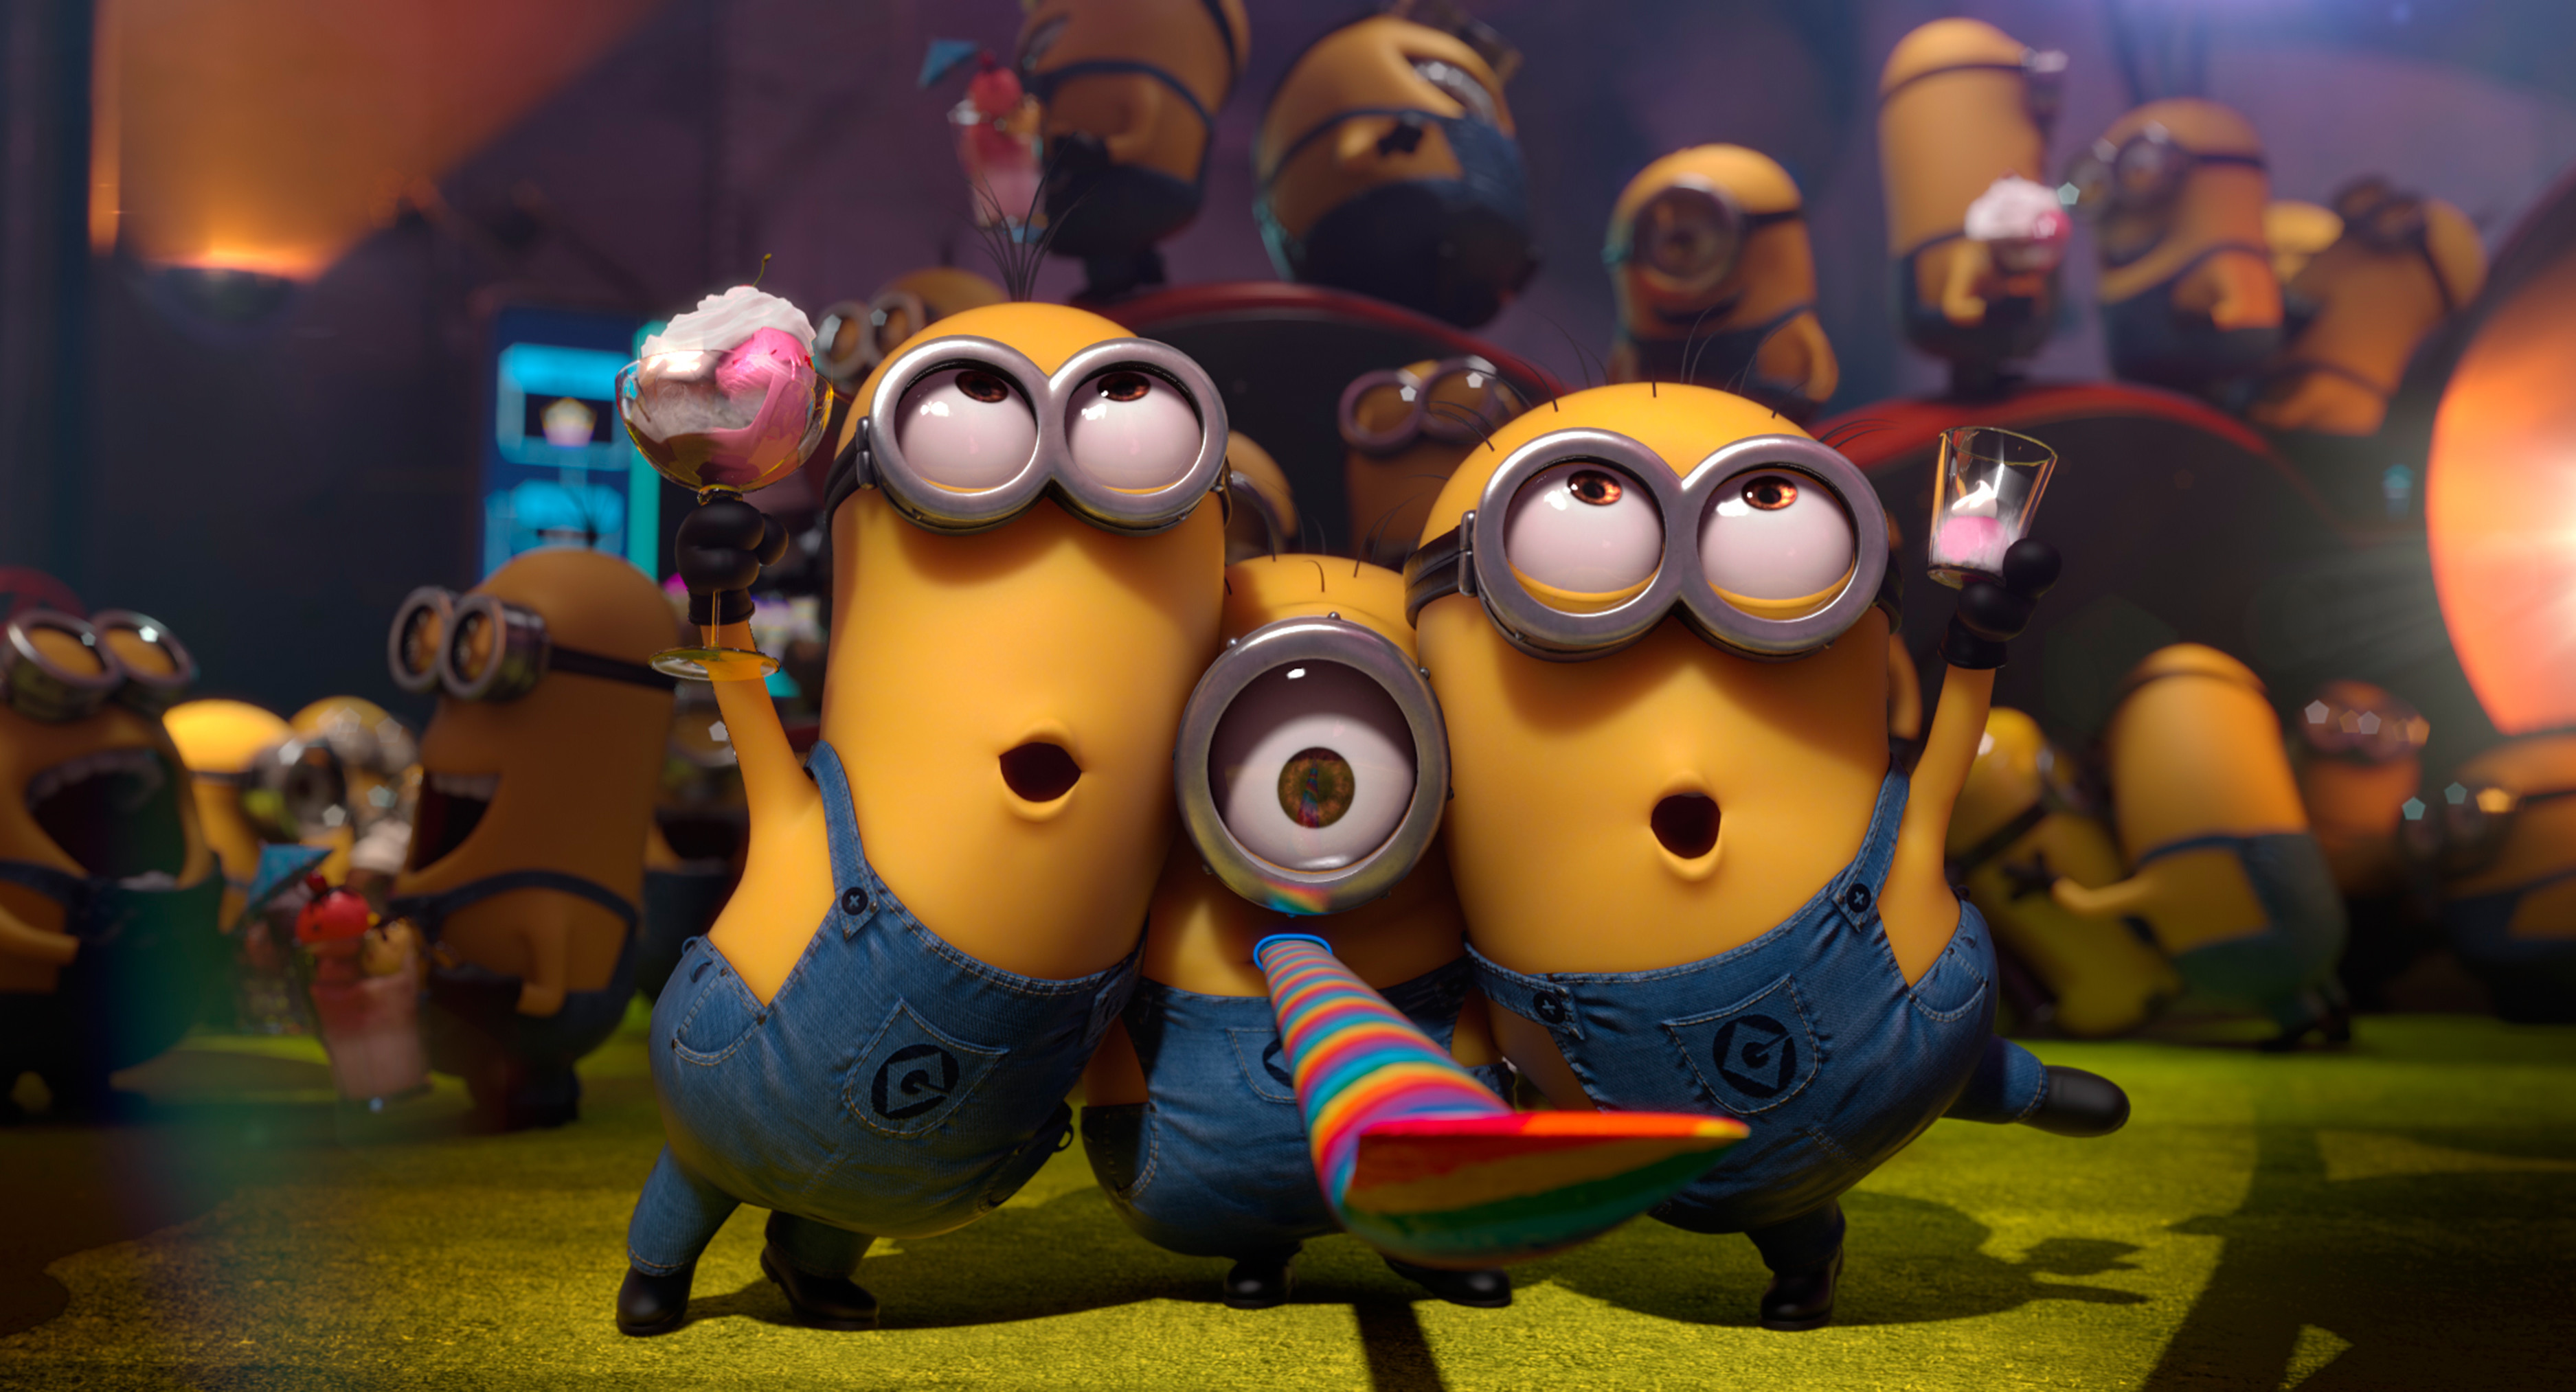 Funny Minions Wallpaper For Desktop 80 Images